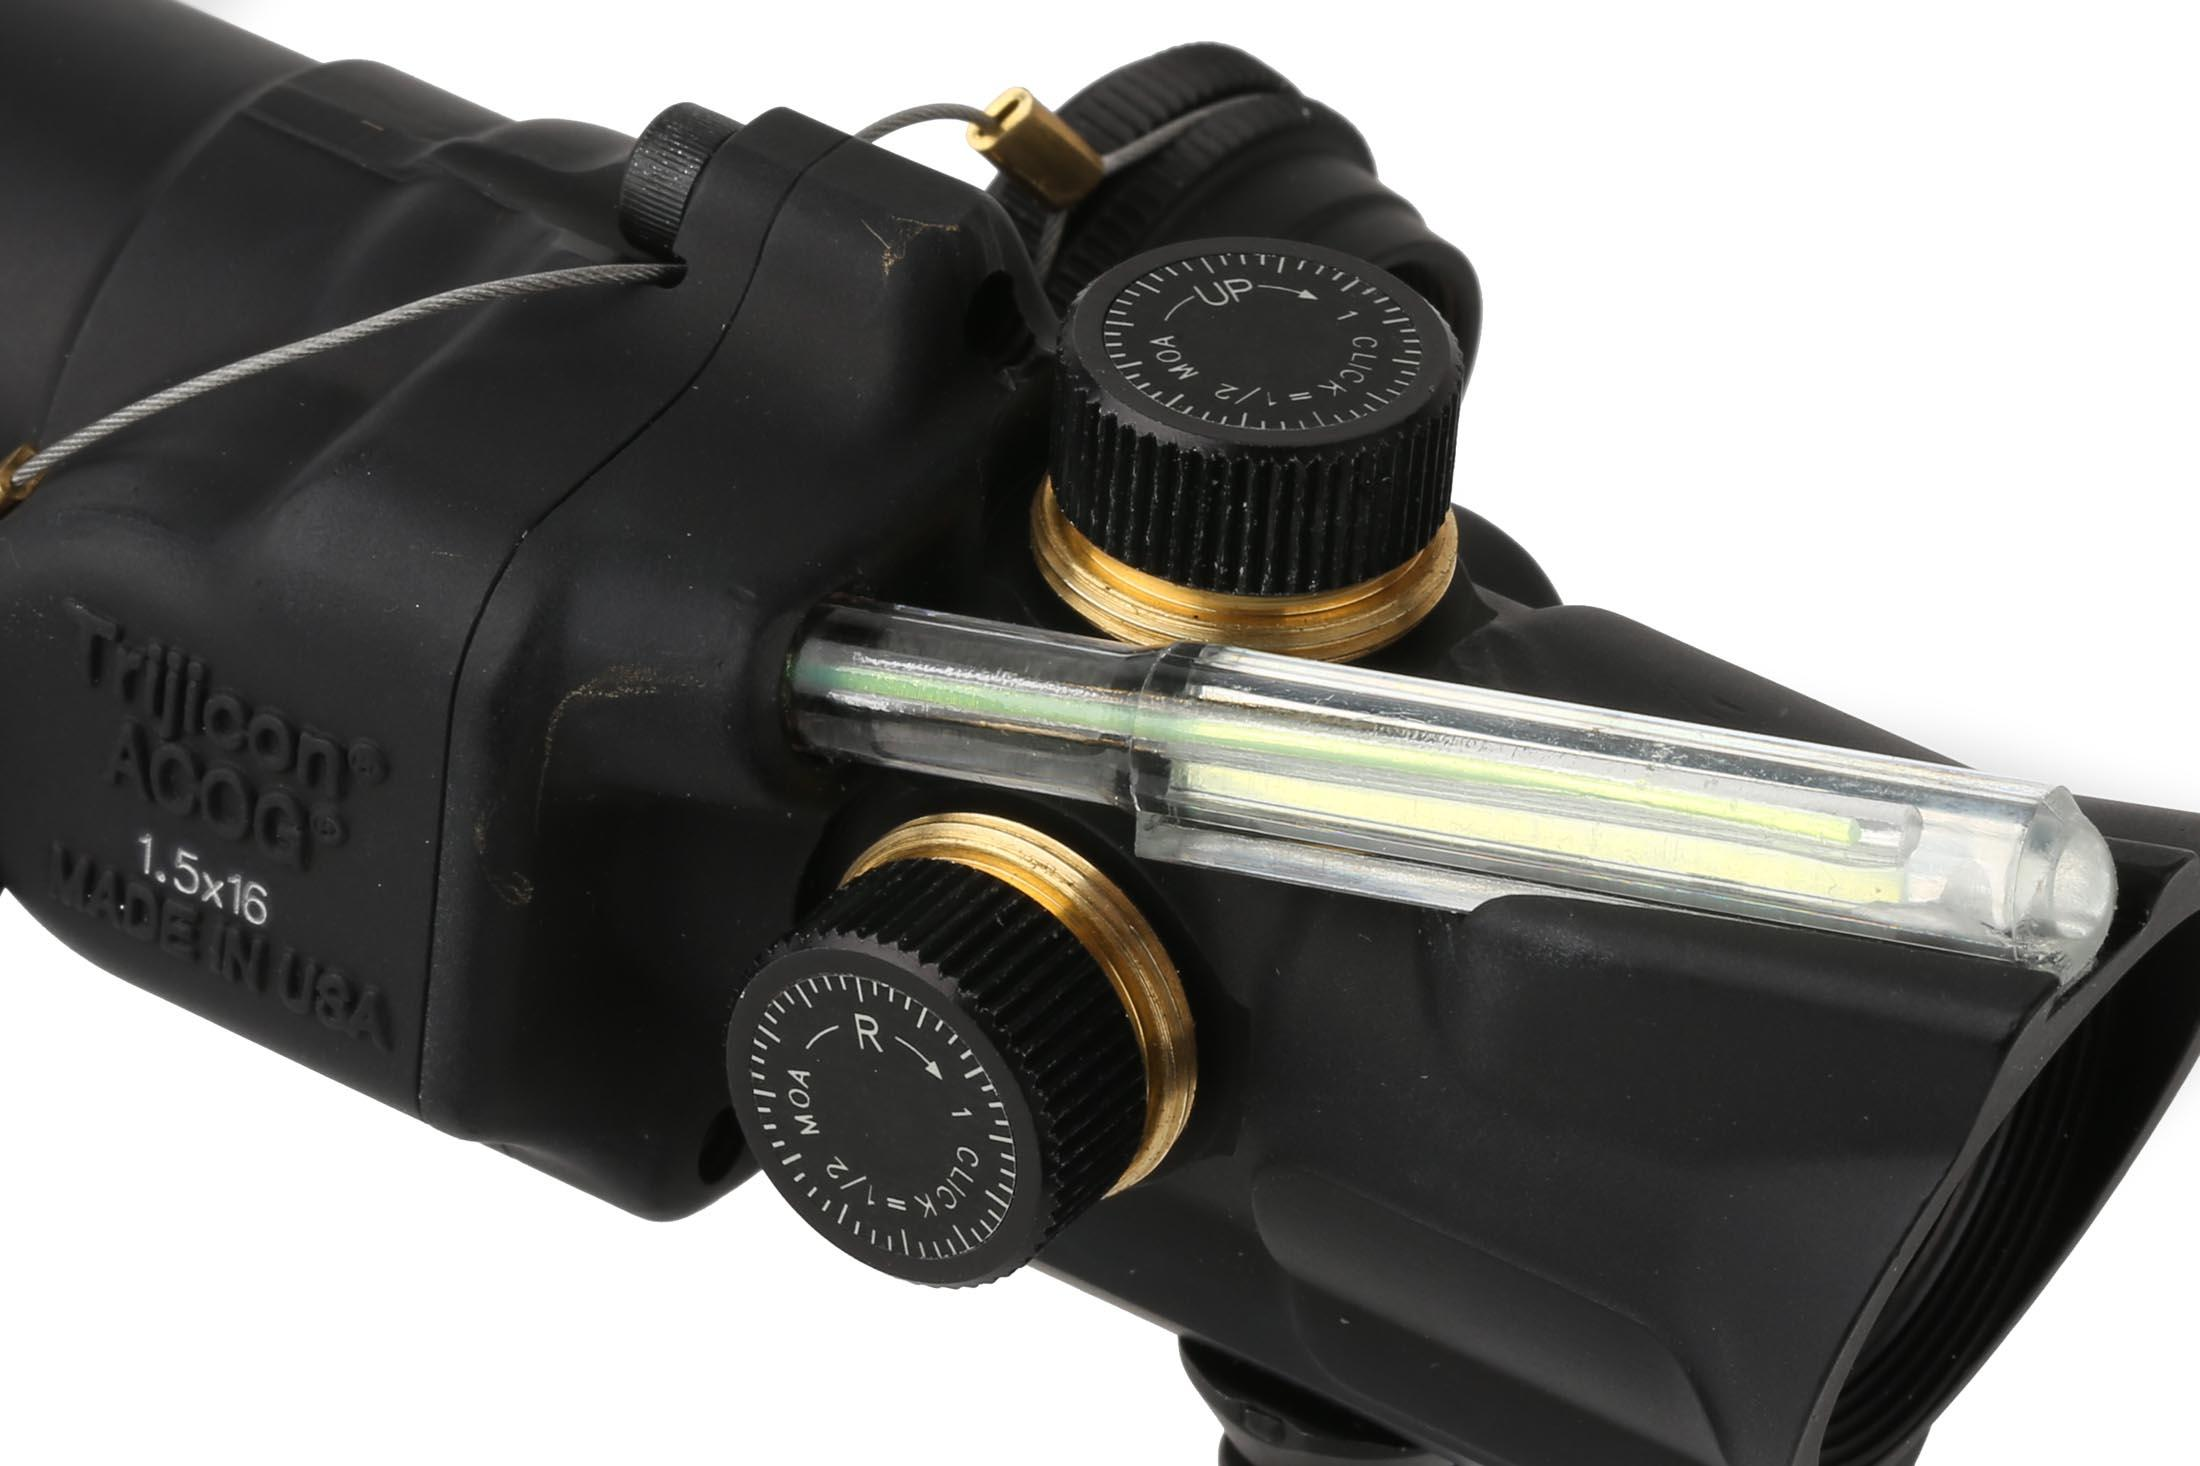 Trijicon ACOG 1.5x16S green compact scope with low base features protected finger adjustable turrets